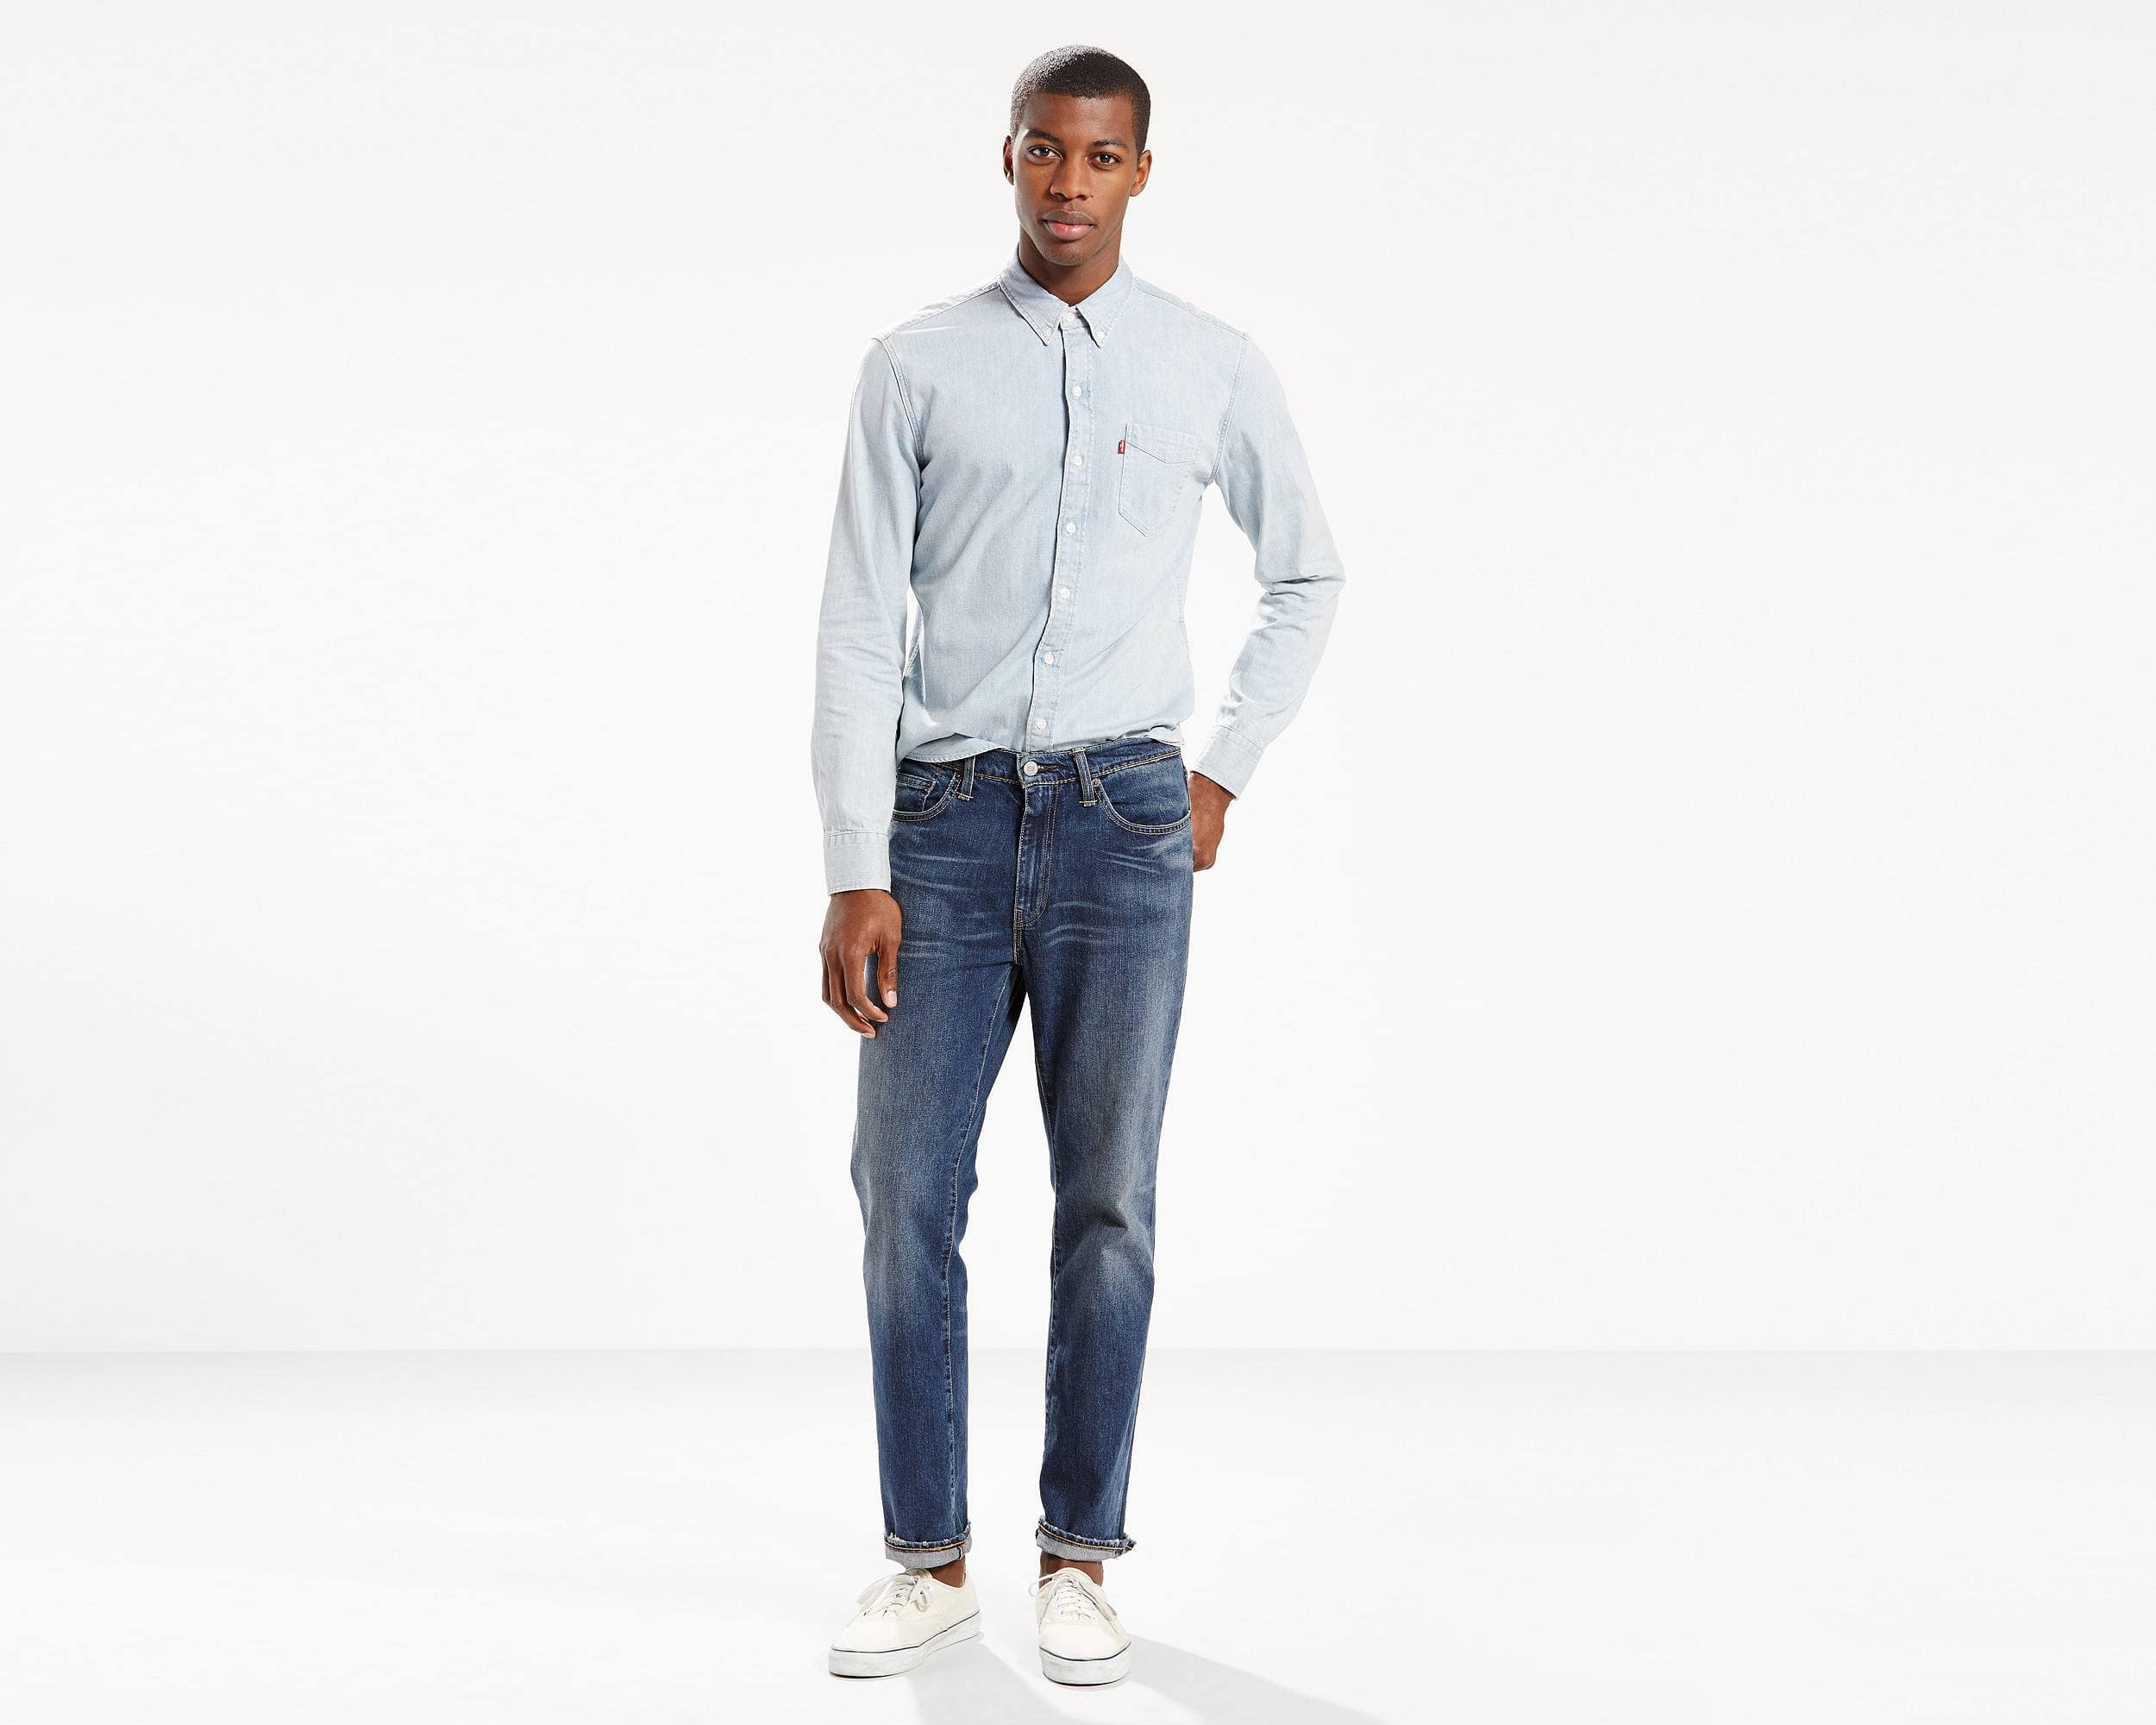 Levis Coupon: 30% Off Including Sale: 505 Men's Jeans $14, 541 Men's Athletic Fit Stretch Jeans $14, More + free shipping on $100+